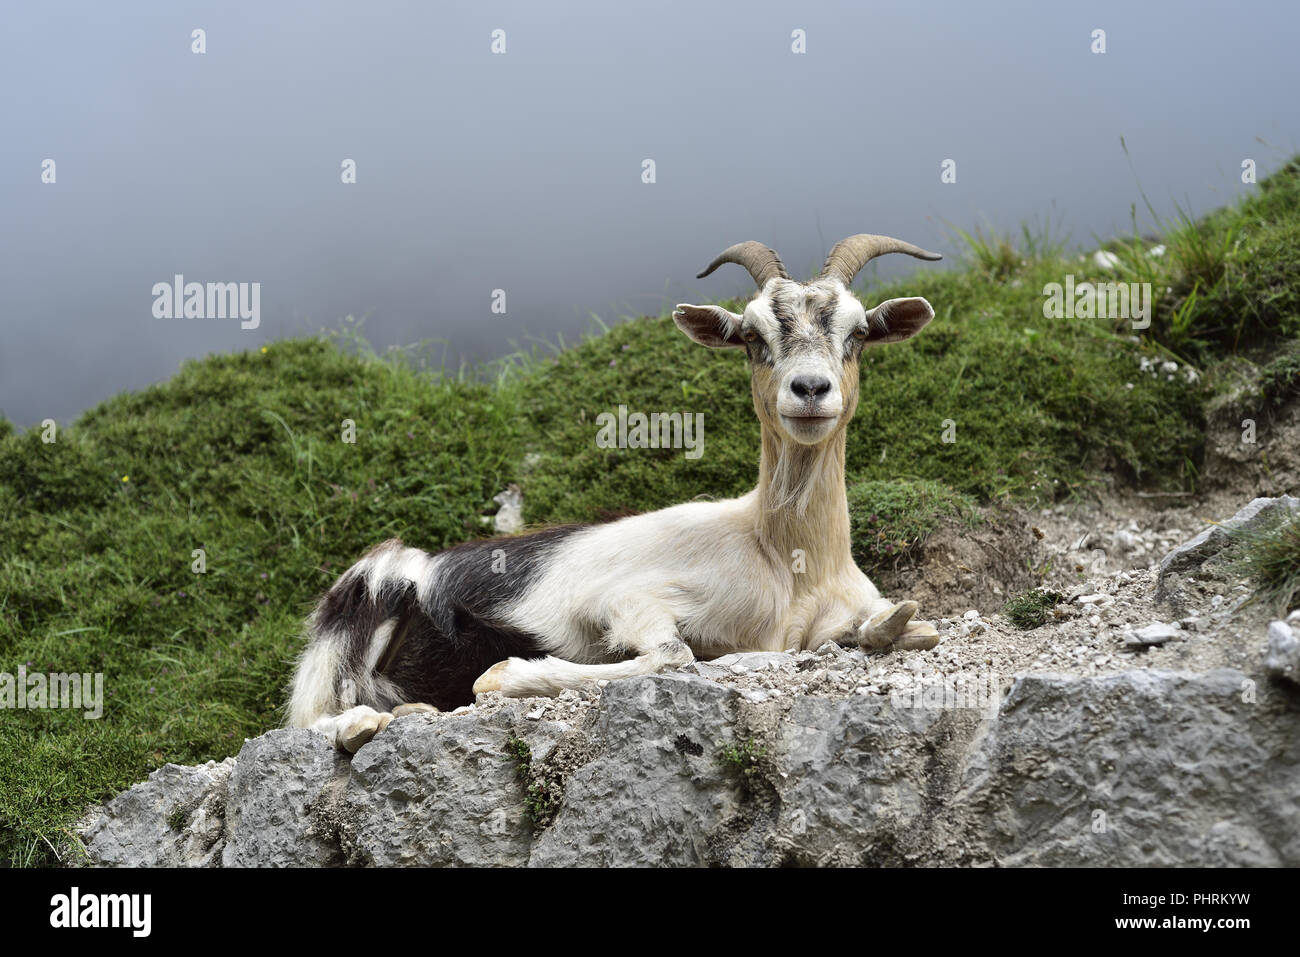 Mountain goat in the Cares Gorge linking Poncebos and Cain in the Picos de Europa, Northern Spain - Stock Image